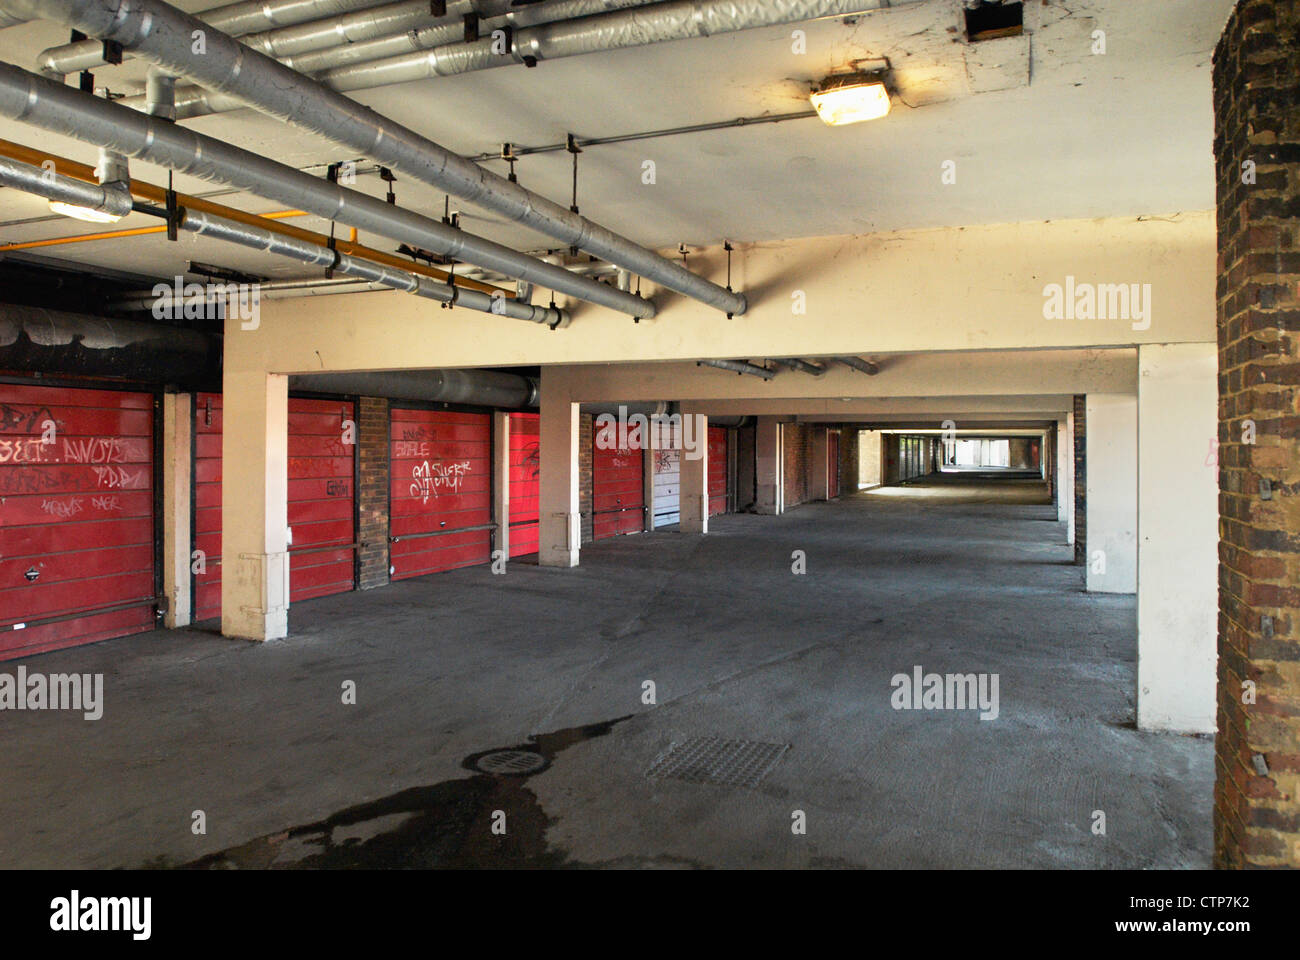 Underground garages and utility pipes under apartment block, South East  London, UK